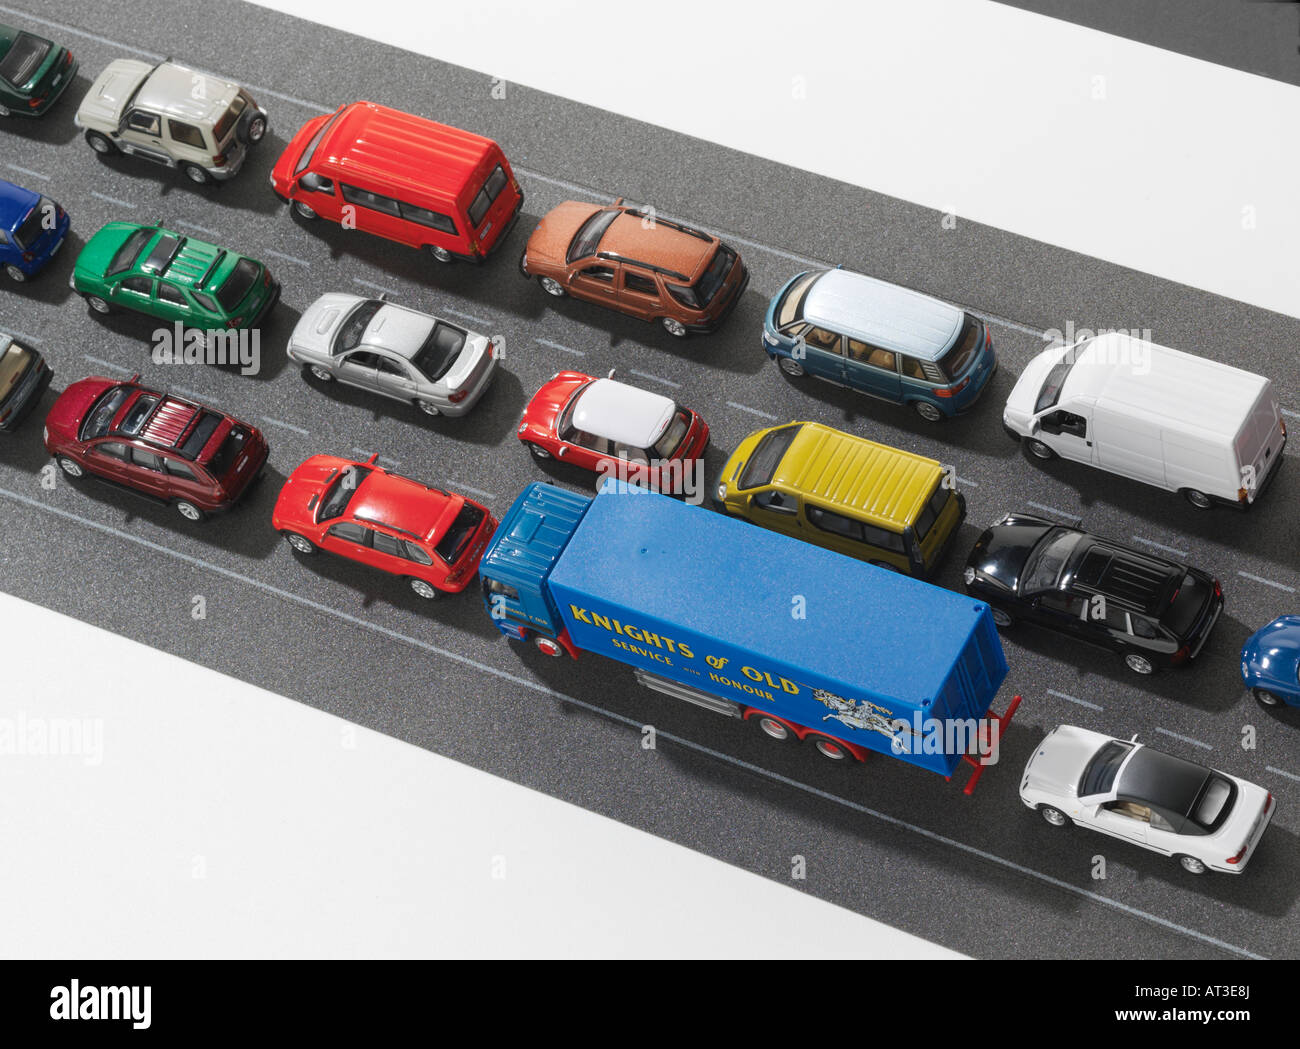 Model cars in a traffic jam, close-up - Stock Image